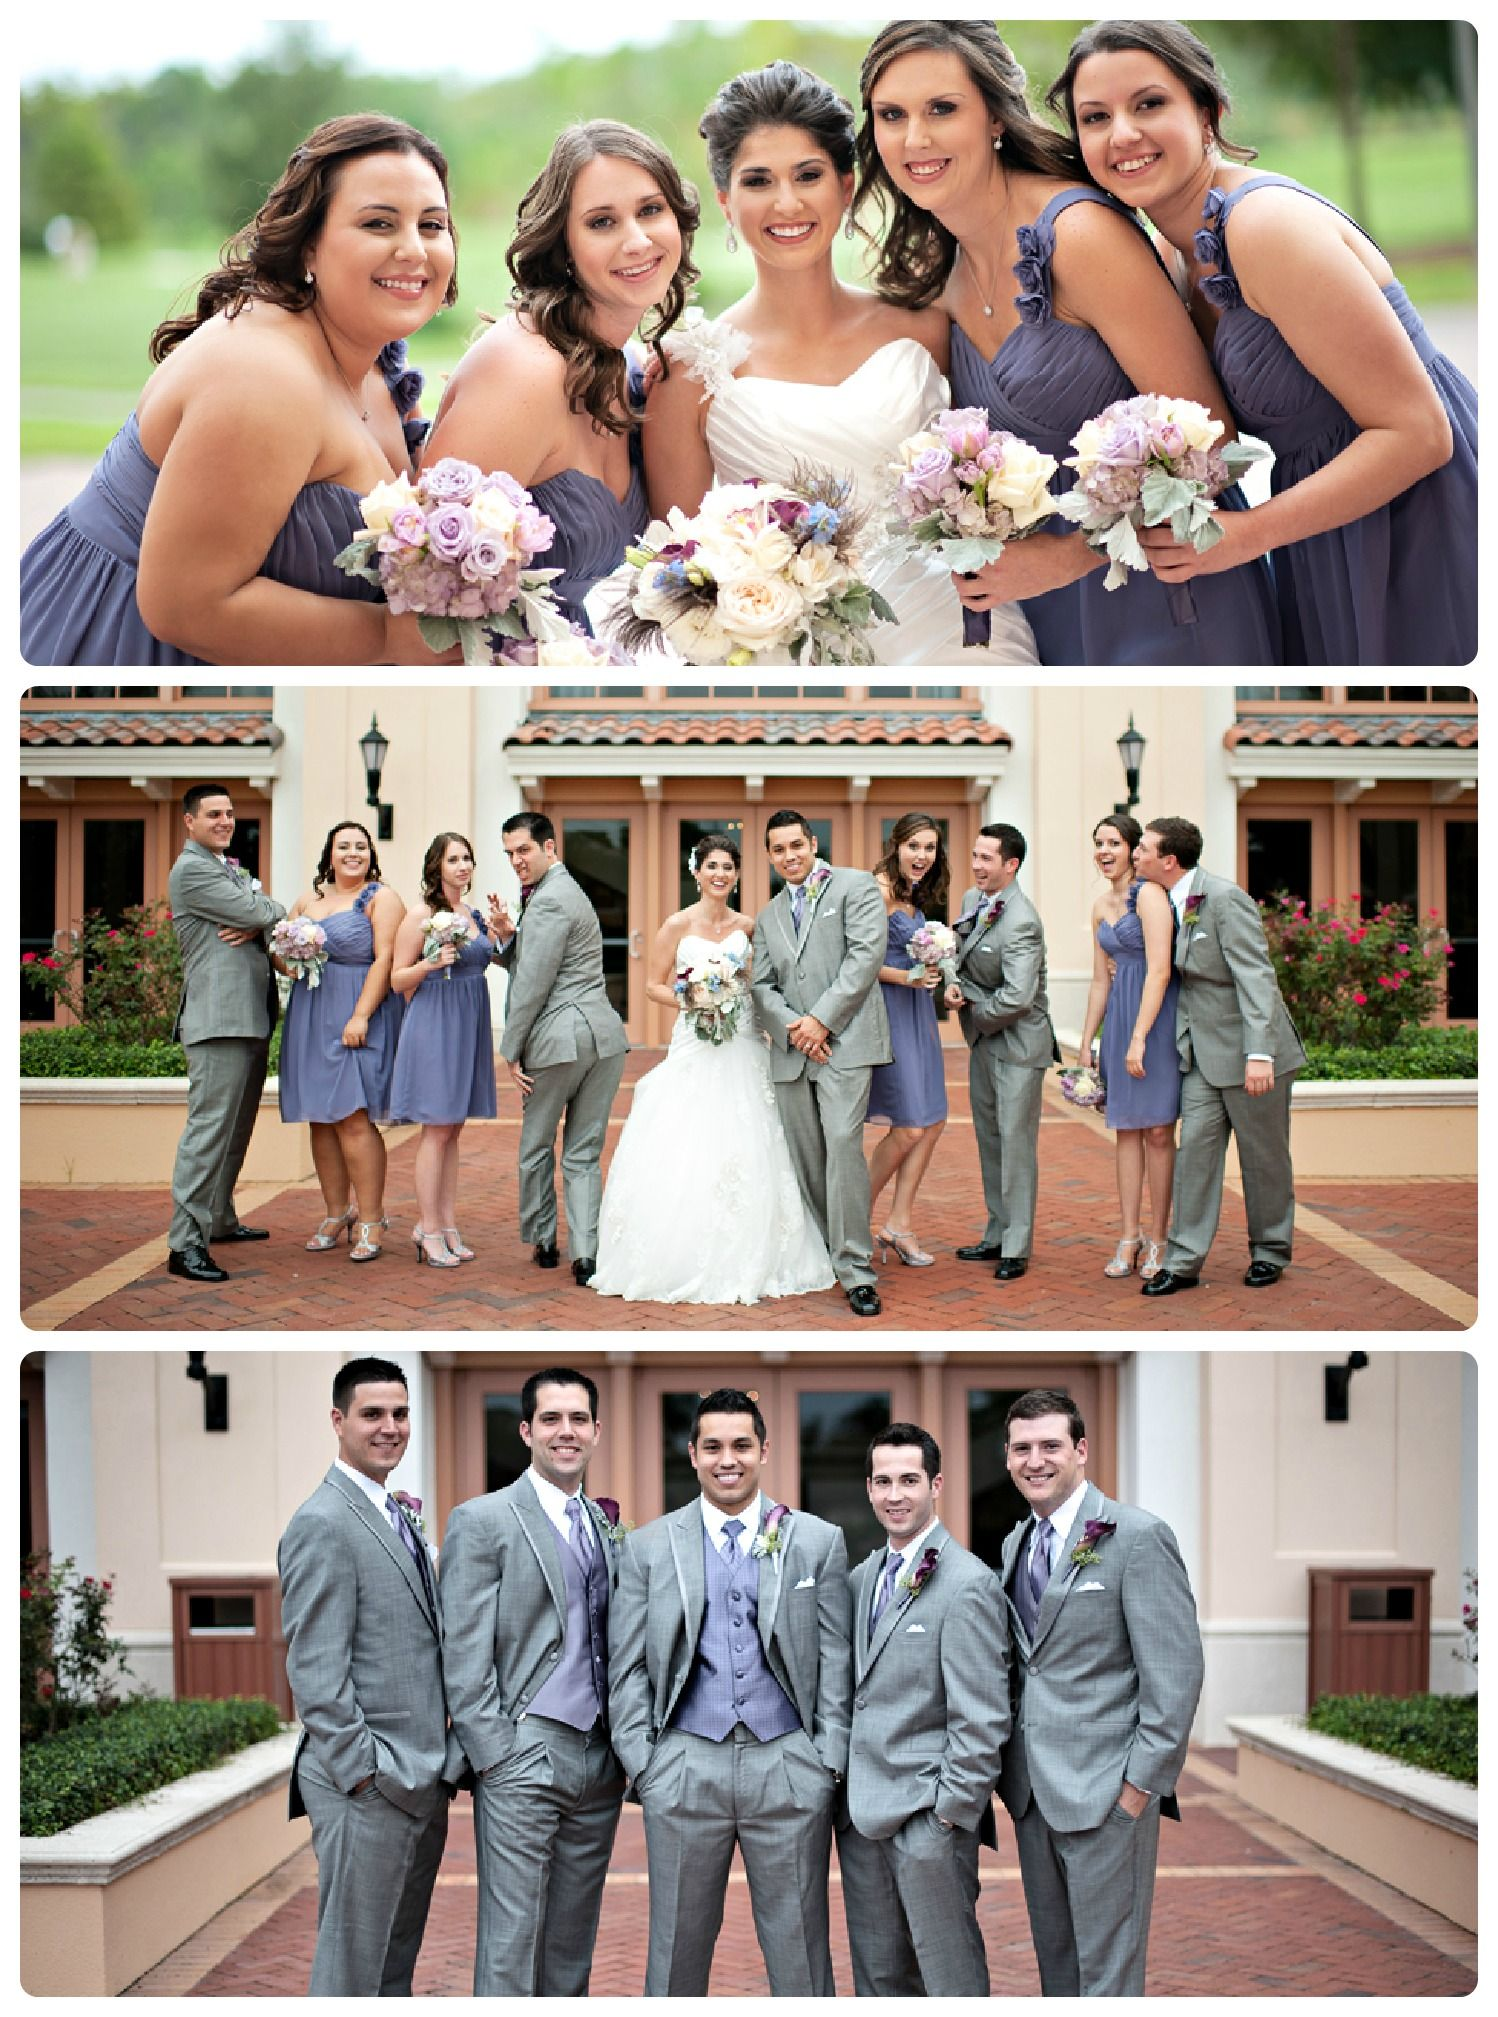 Periwinkle bridesmaids dresses with groomsmenbridesmaid periwinkle bridesmaids dresses with groomsmen ombrellifo Choice Image